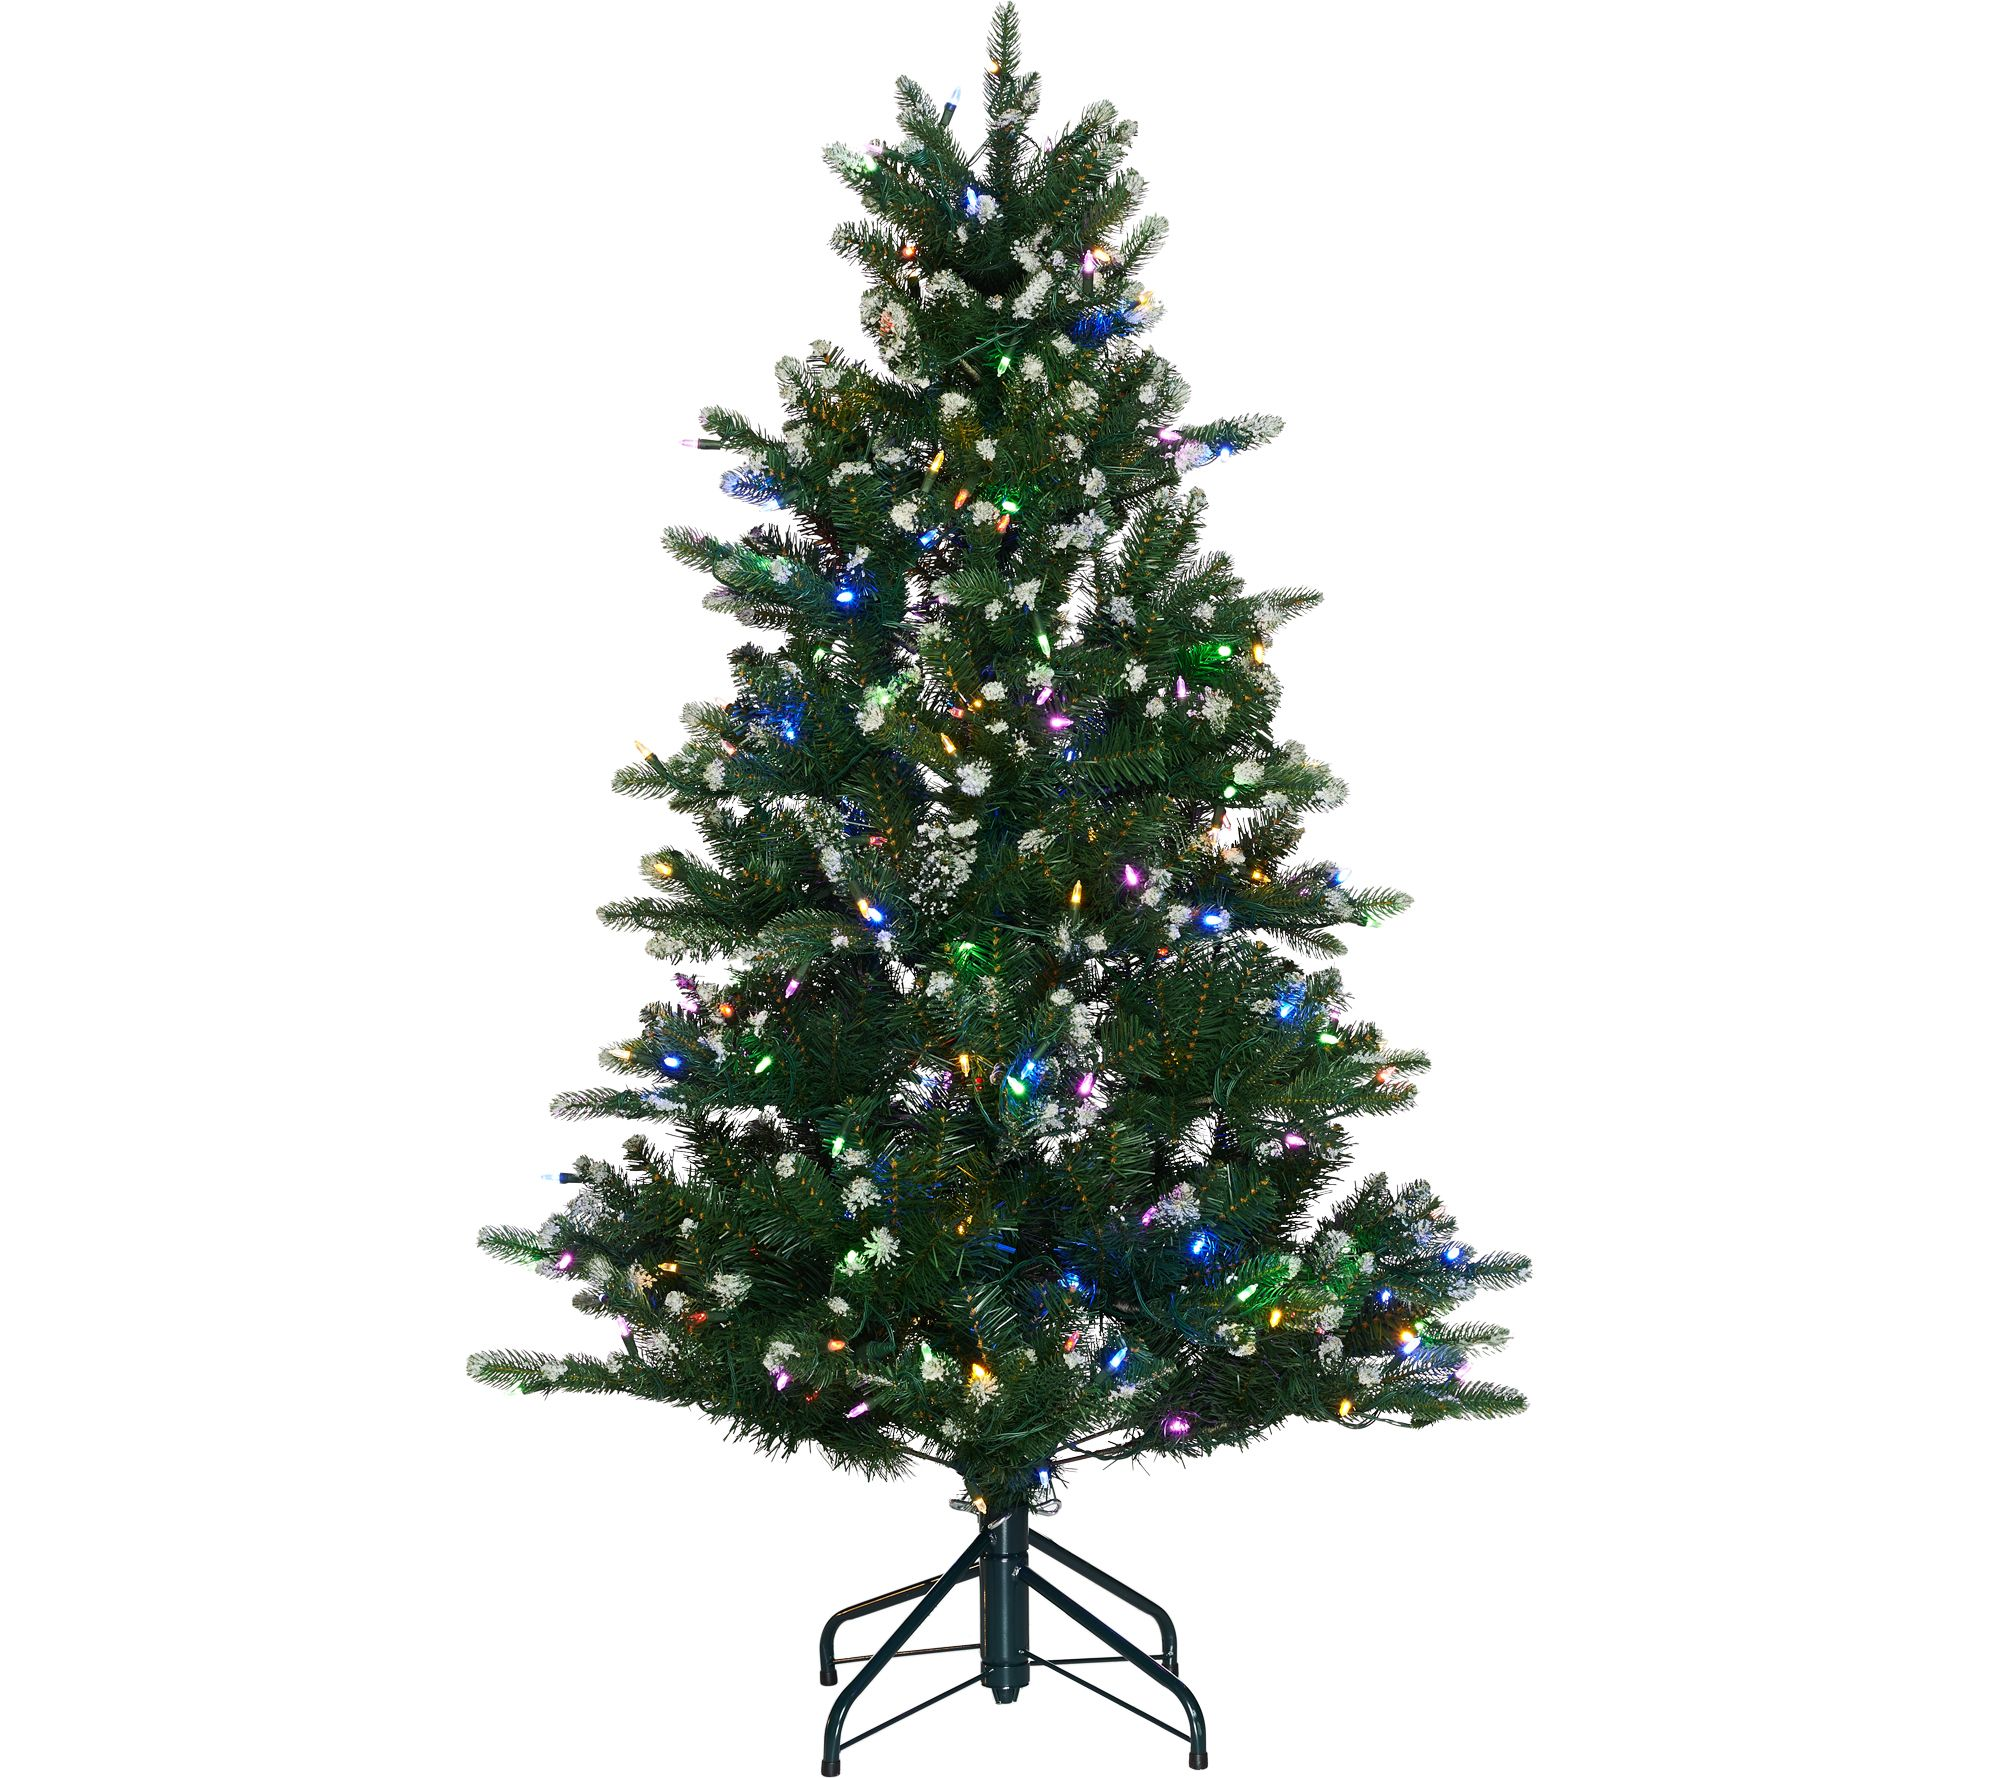 Best Price On Christmas Trees: ED On Air Santa's Best 5' Frosted Icicle Tree By Ellen